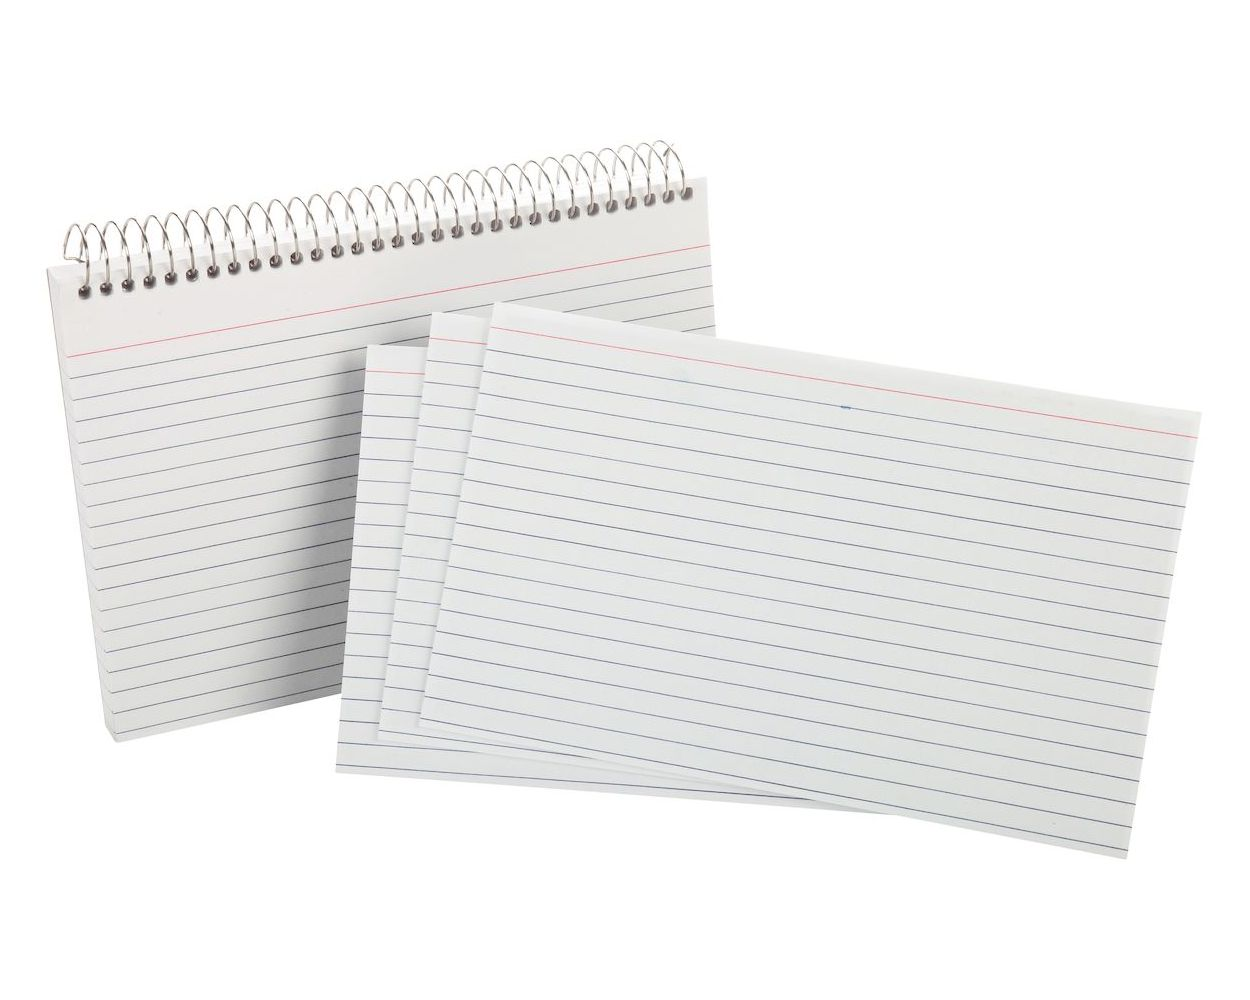 5 Pack of 50 Cards Oxford Spiral Index Cards 4 x 6 White